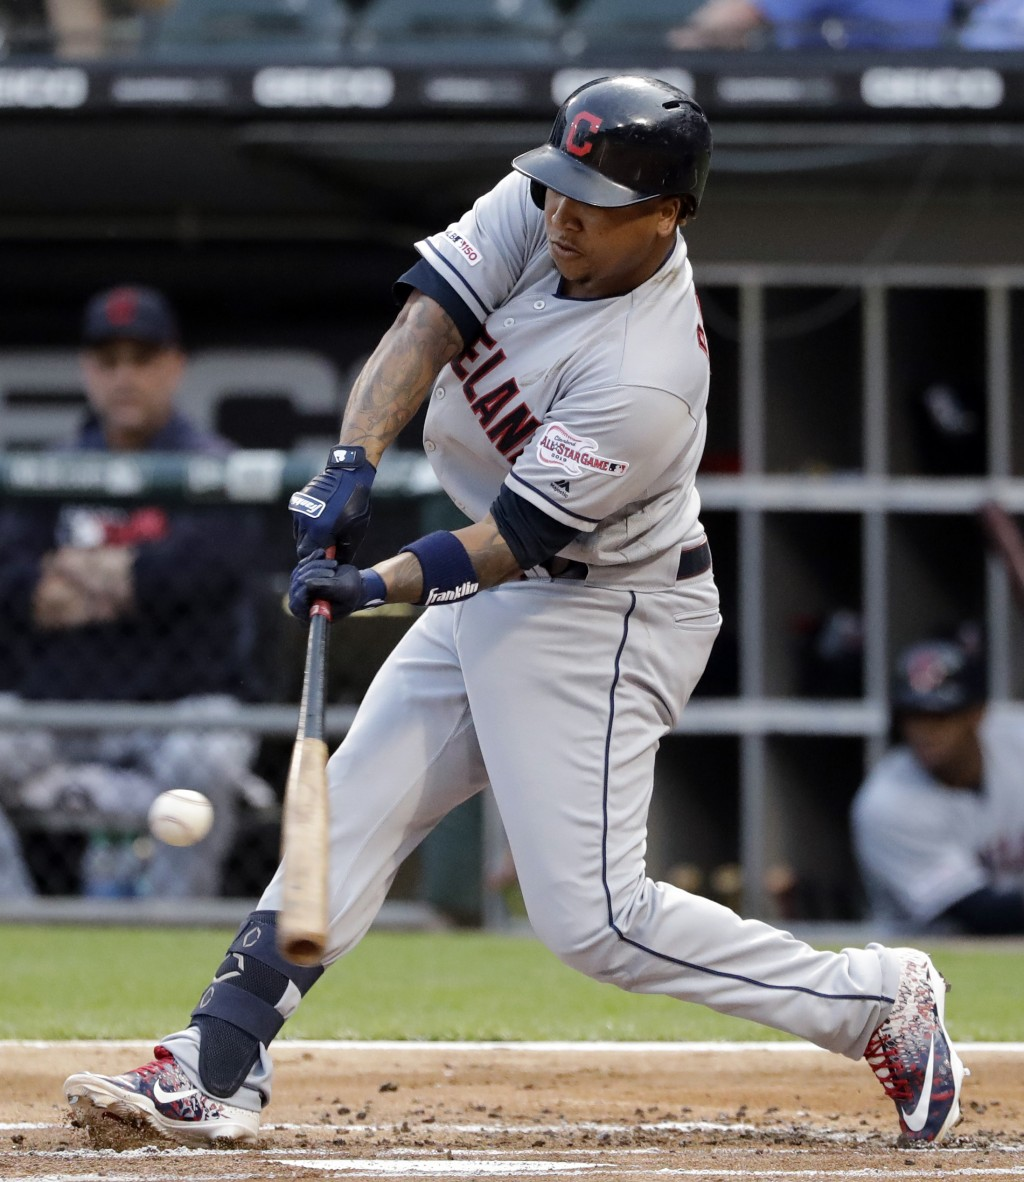 Cleveland Indians' Jose Ramirez hits a double against the Chicago White Sox during the first inning of a baseball game in Chicago, Friday, May 31, 201